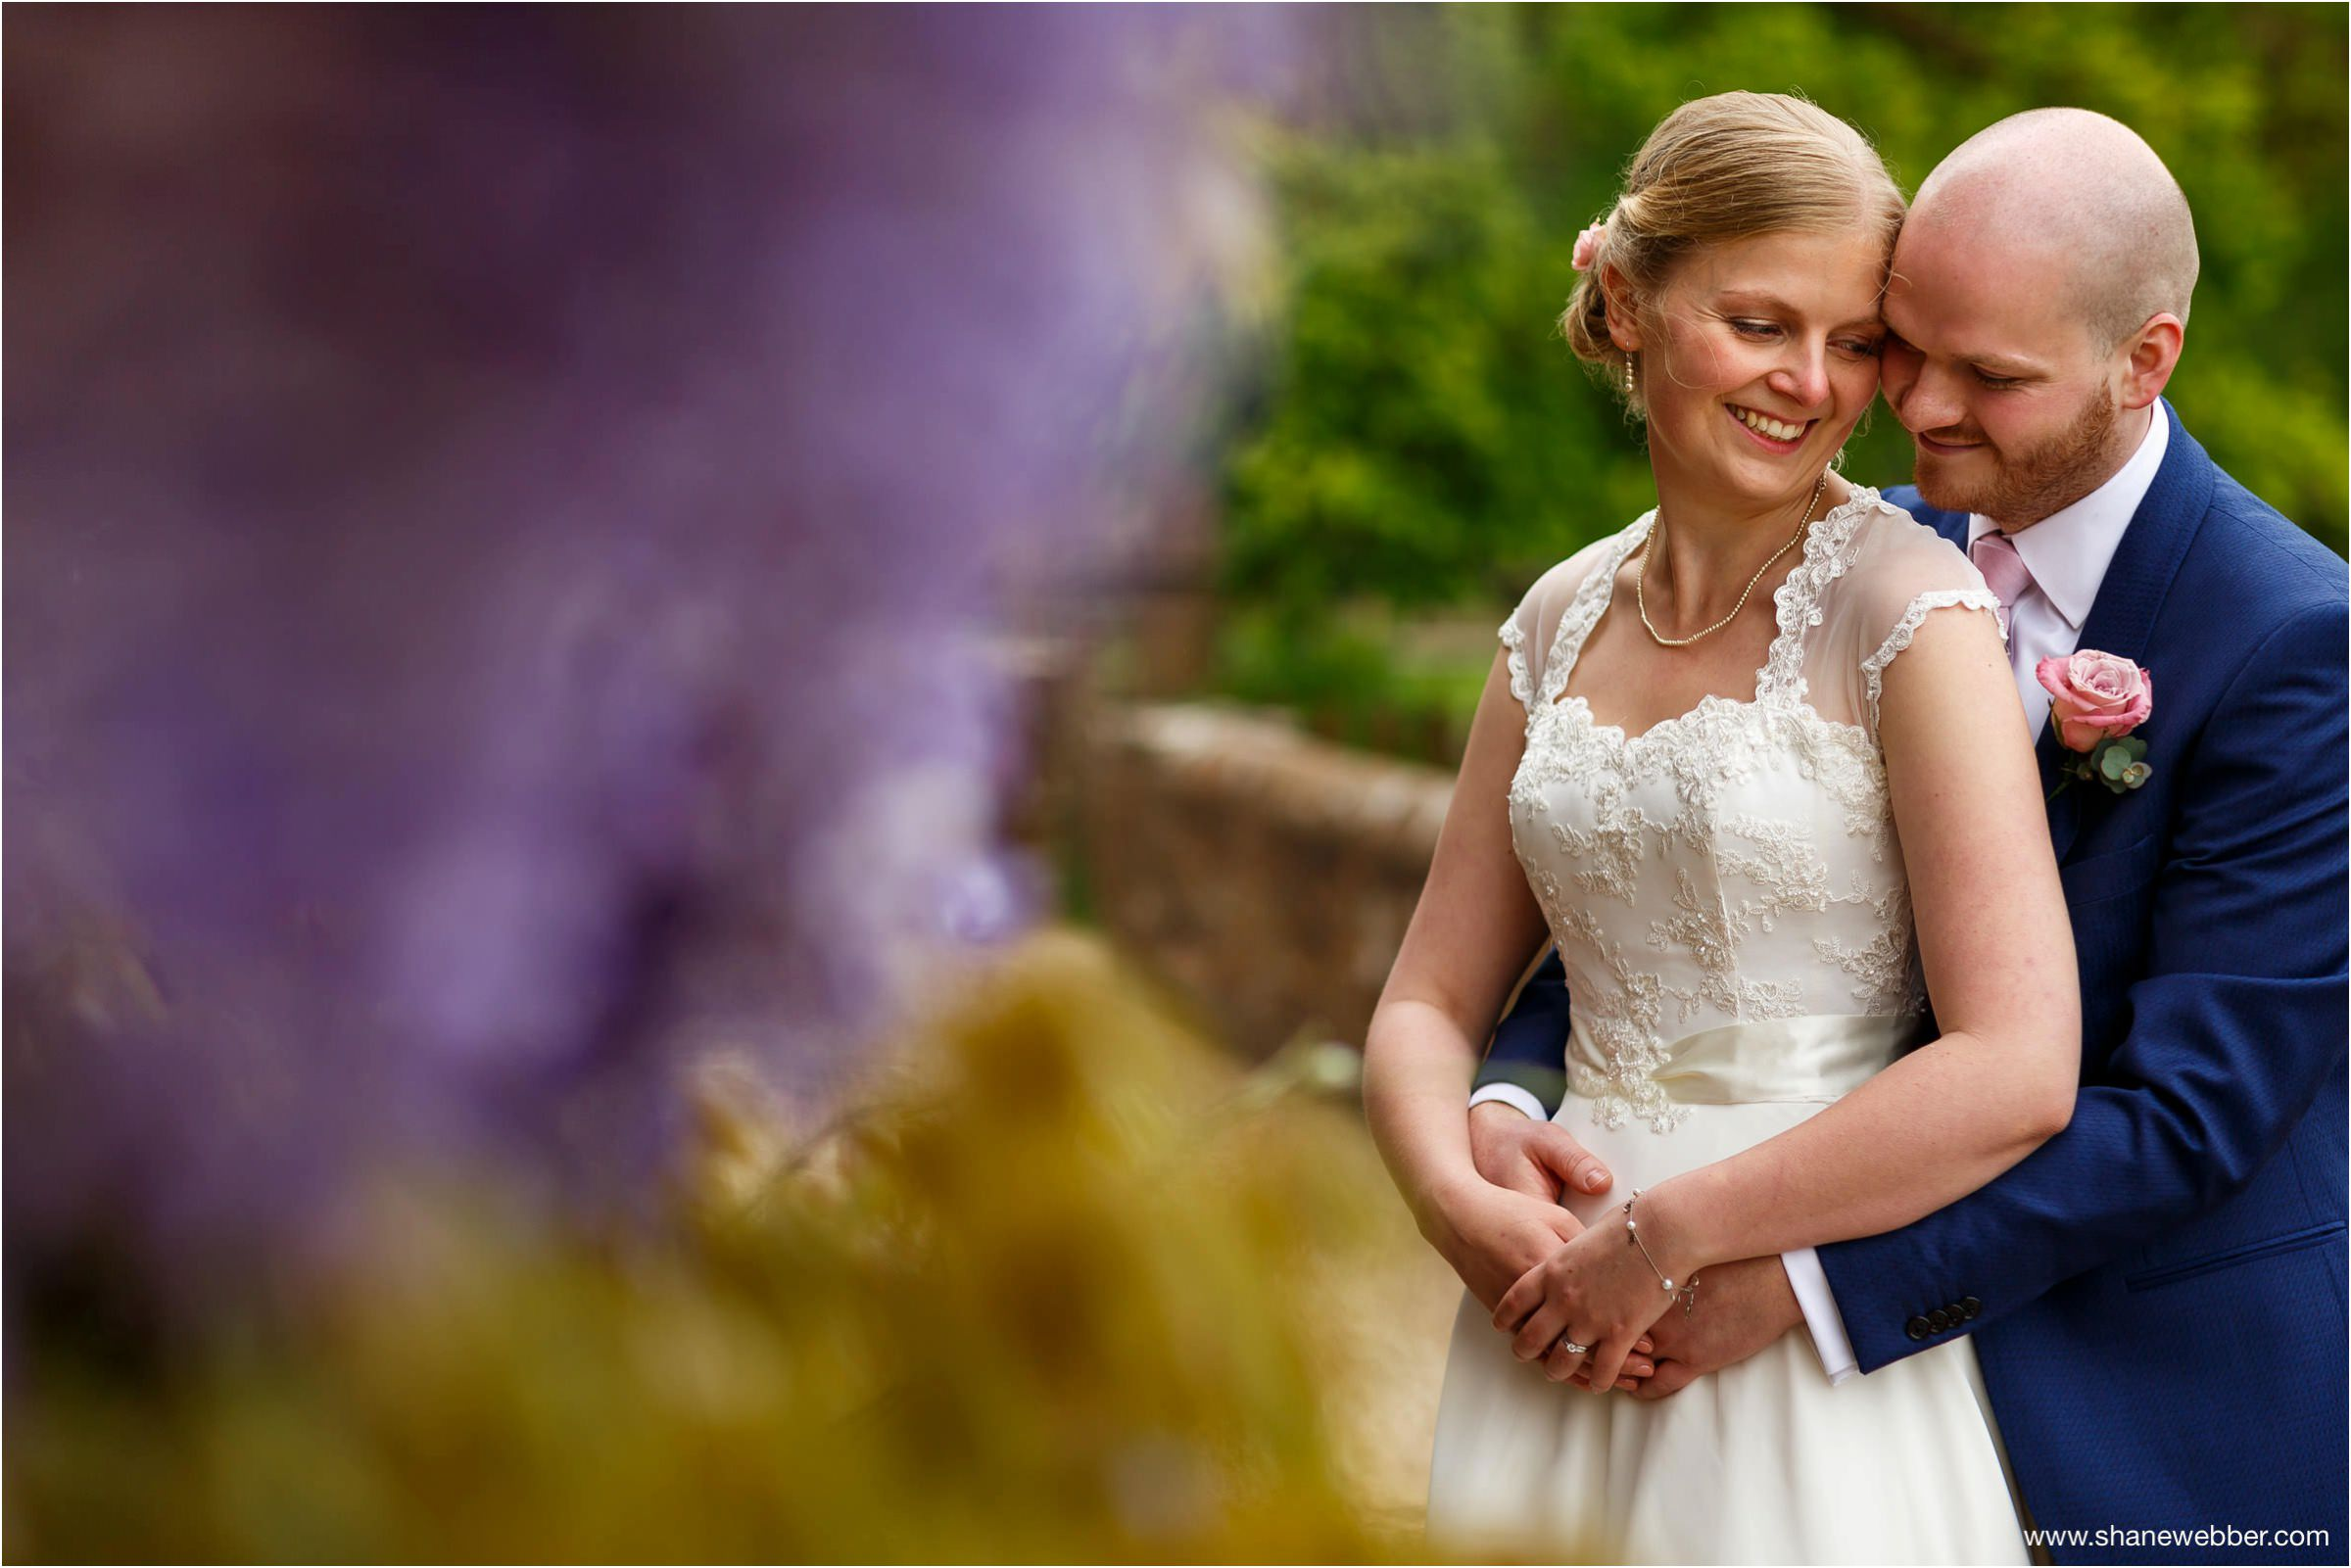 Wedding photos in Ufton Court gardens